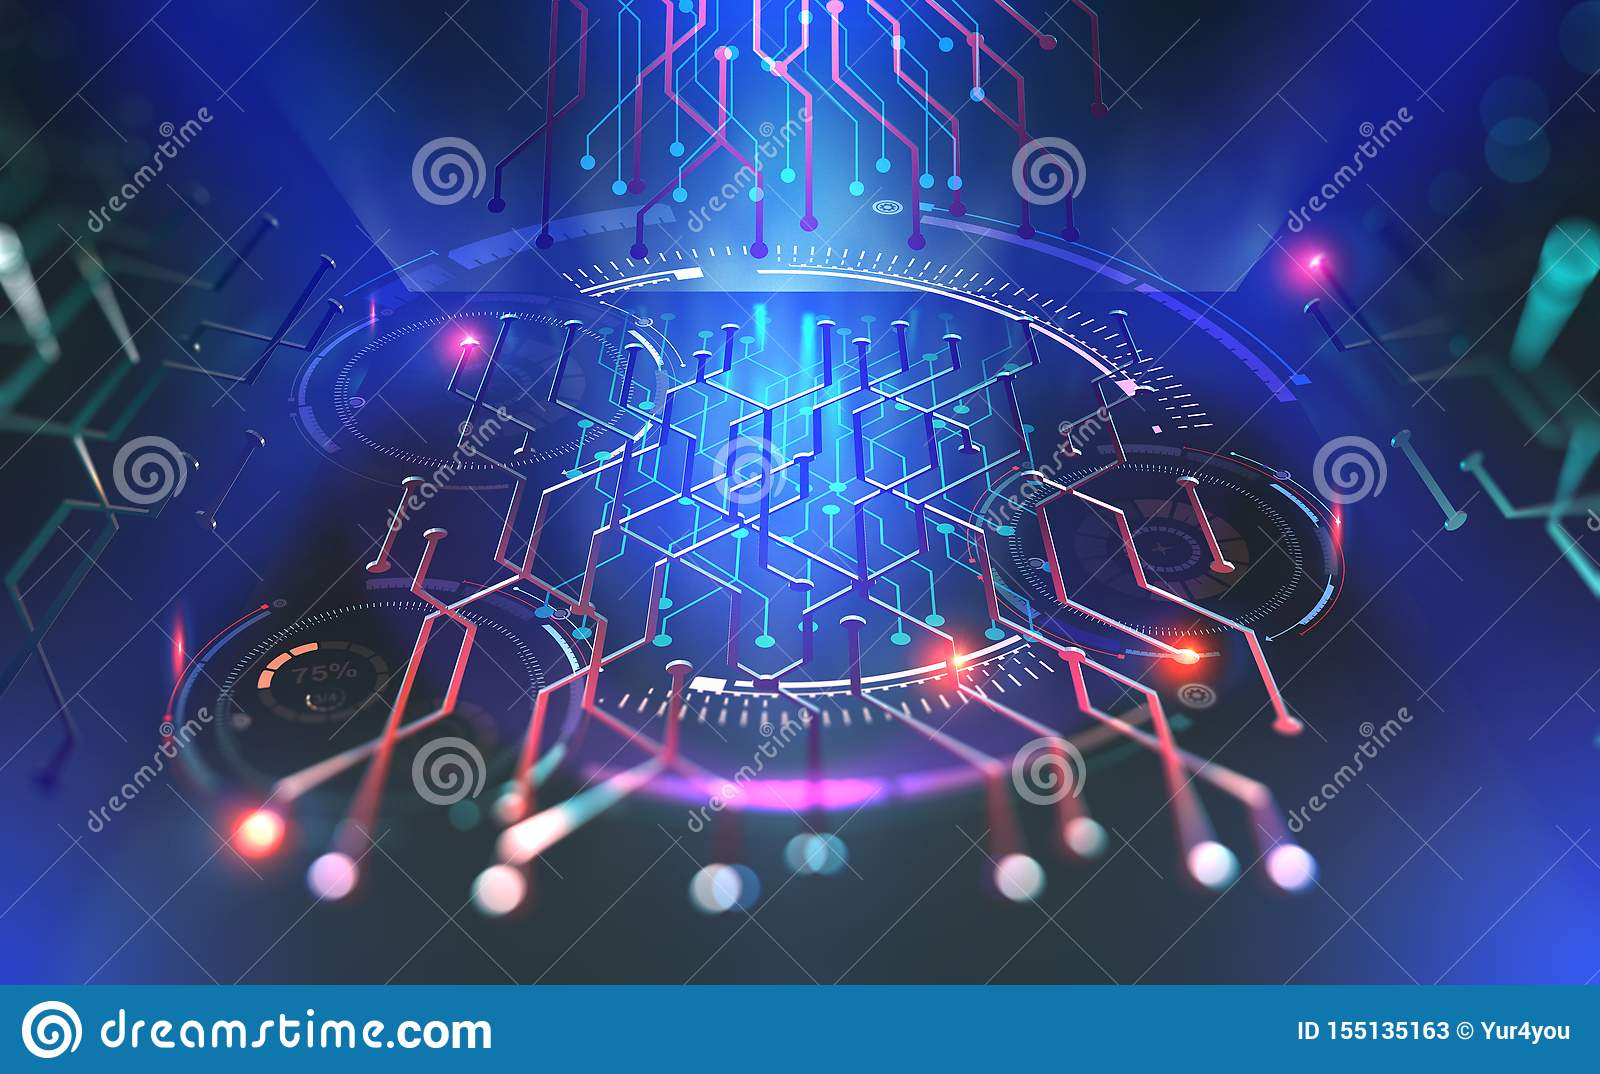 Computer technology of the future. Microchip quantum processor